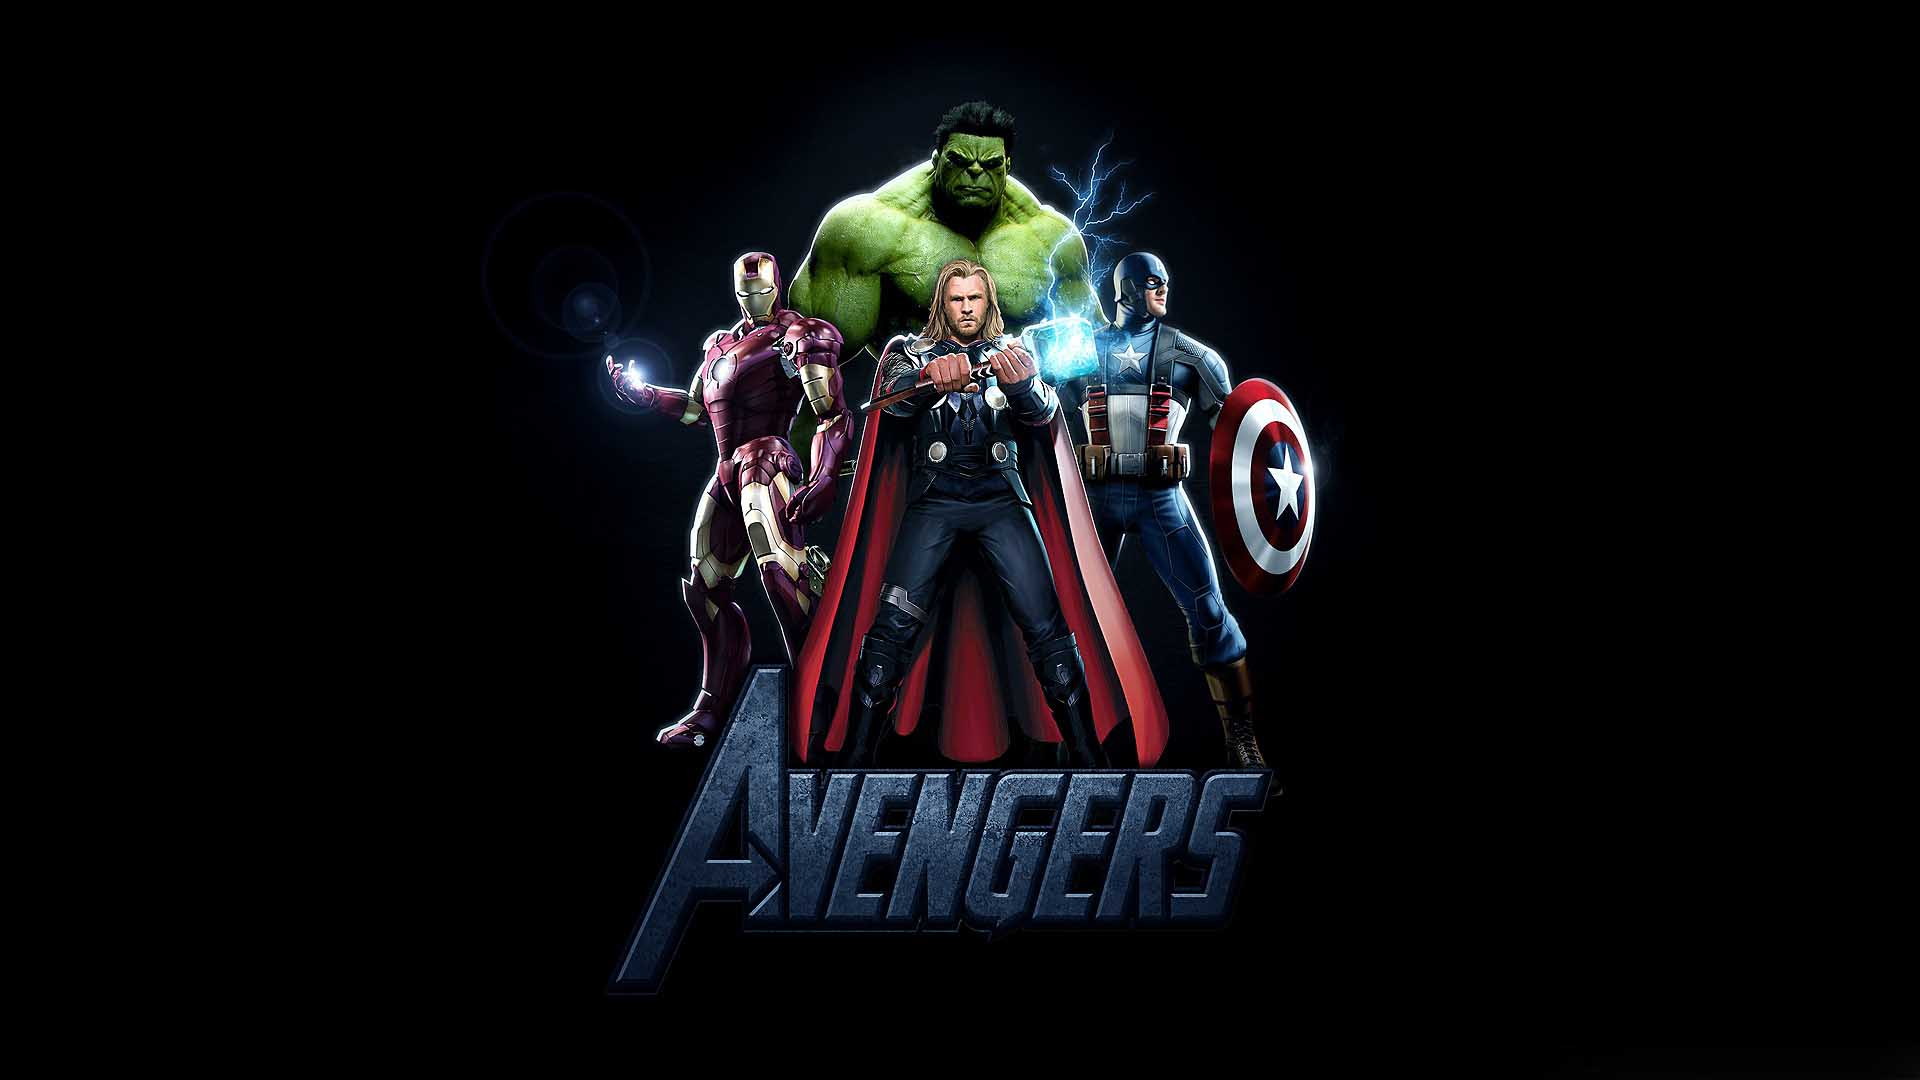 The Avengers Movie 2012 HD Wallpaper